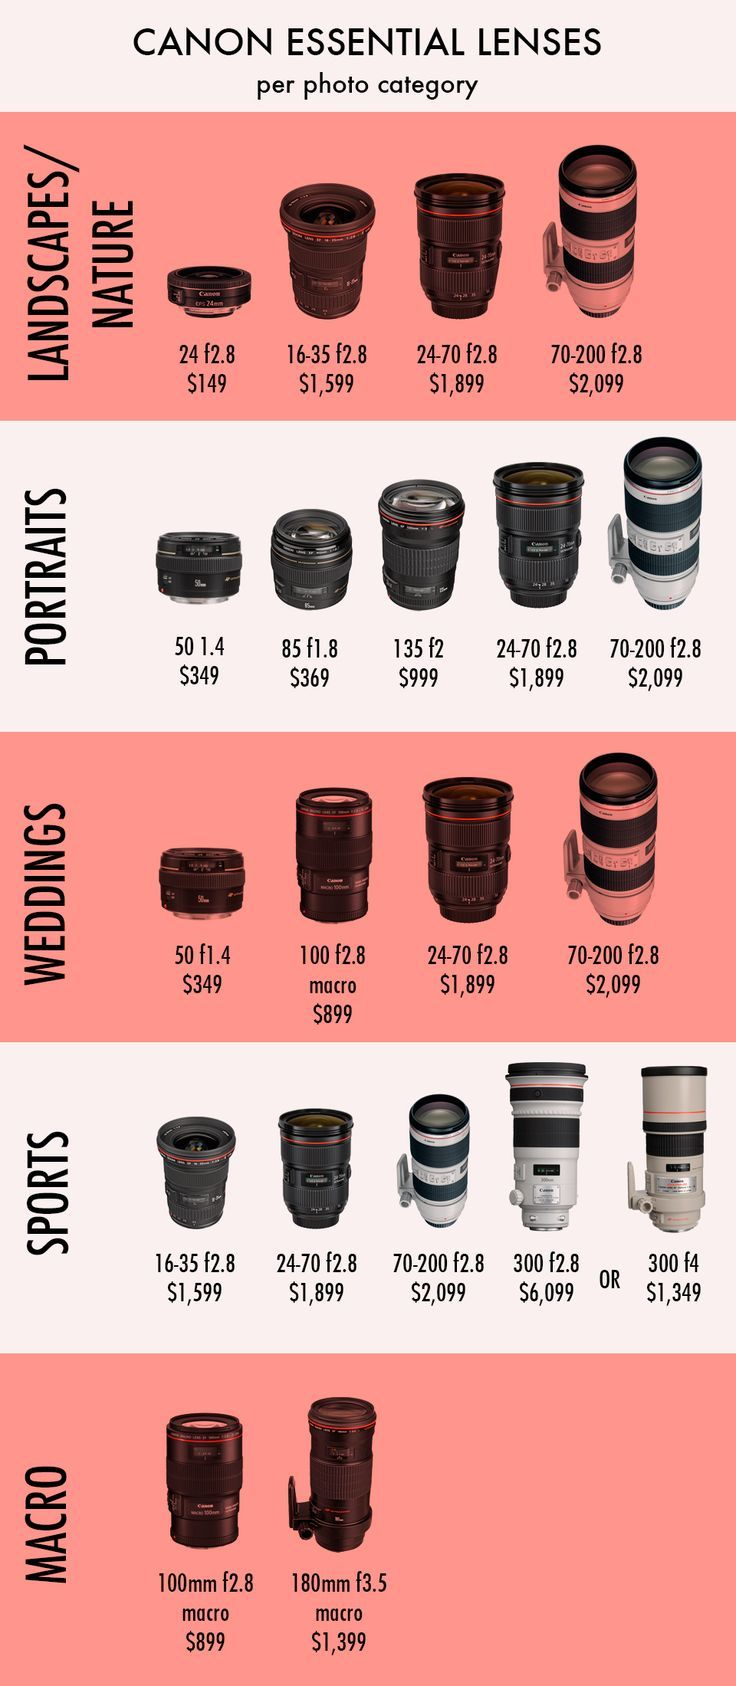 nikon and canon lens price comparison – Kath – Creative-Sis